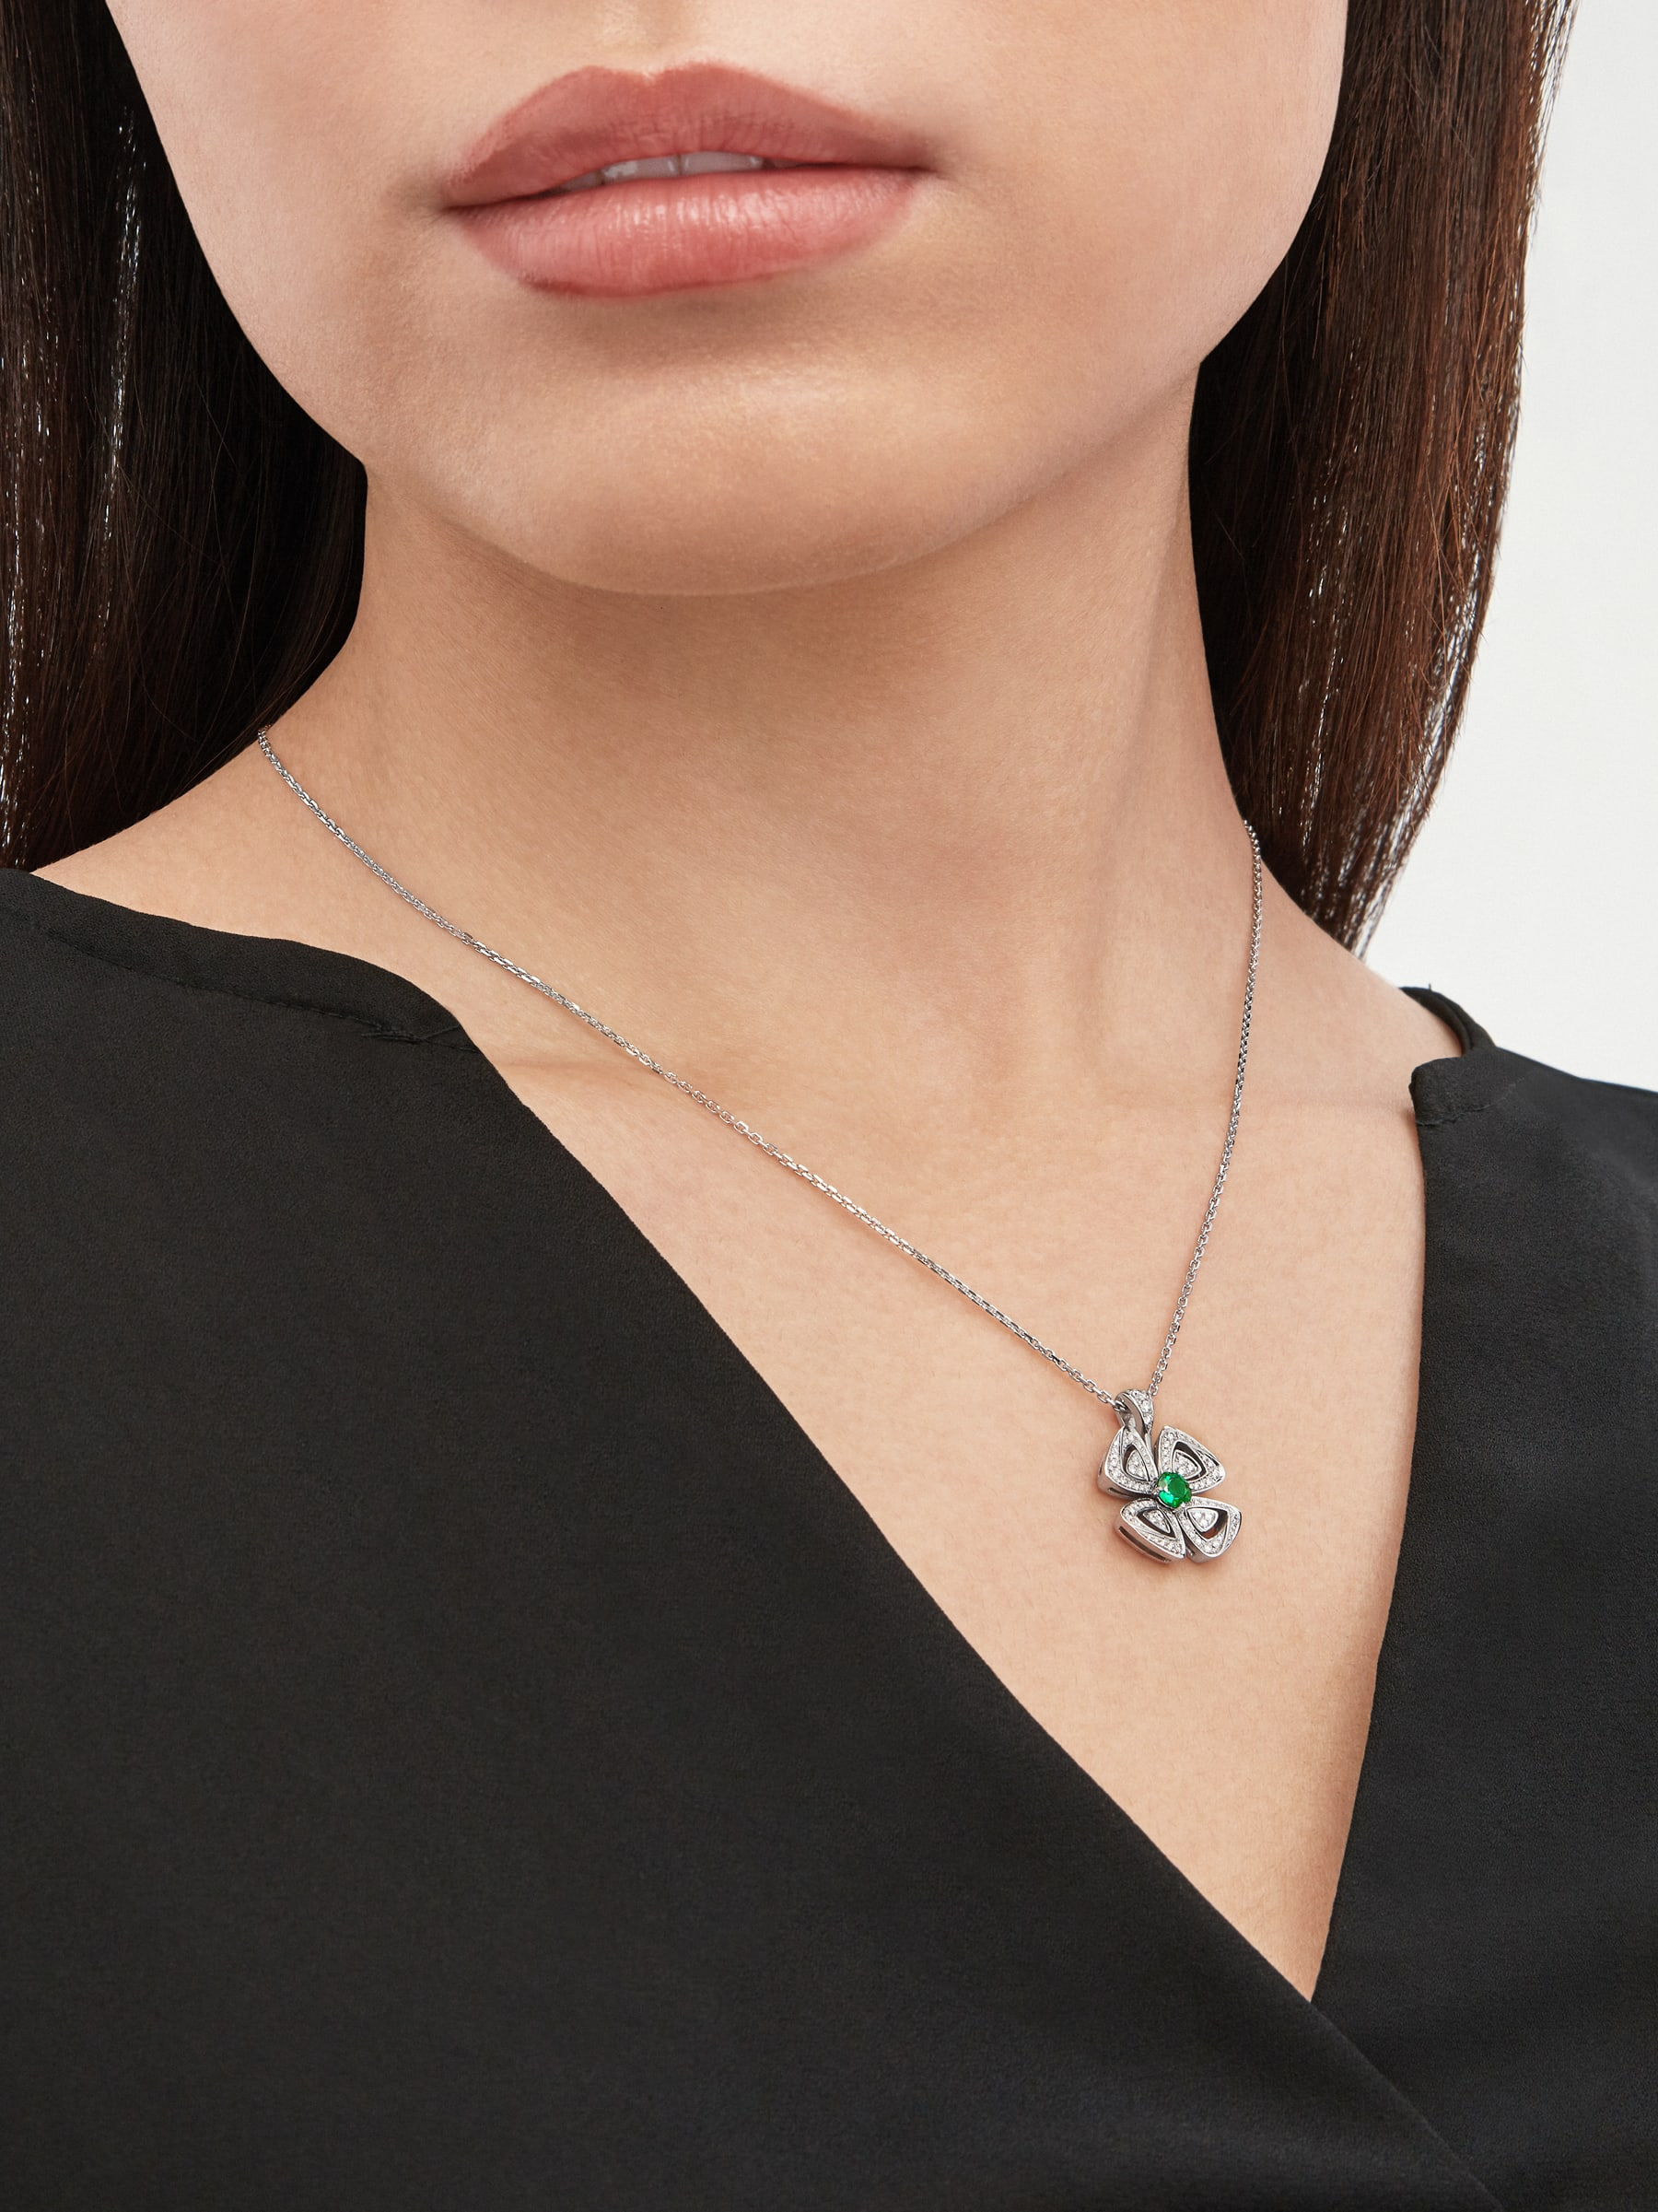 Fiorever 18 kt white gold pendant necklace set with a central brilliant-cut emerald (0.30 ct) and pavé diamonds (0.31 ct) 358427 image 1